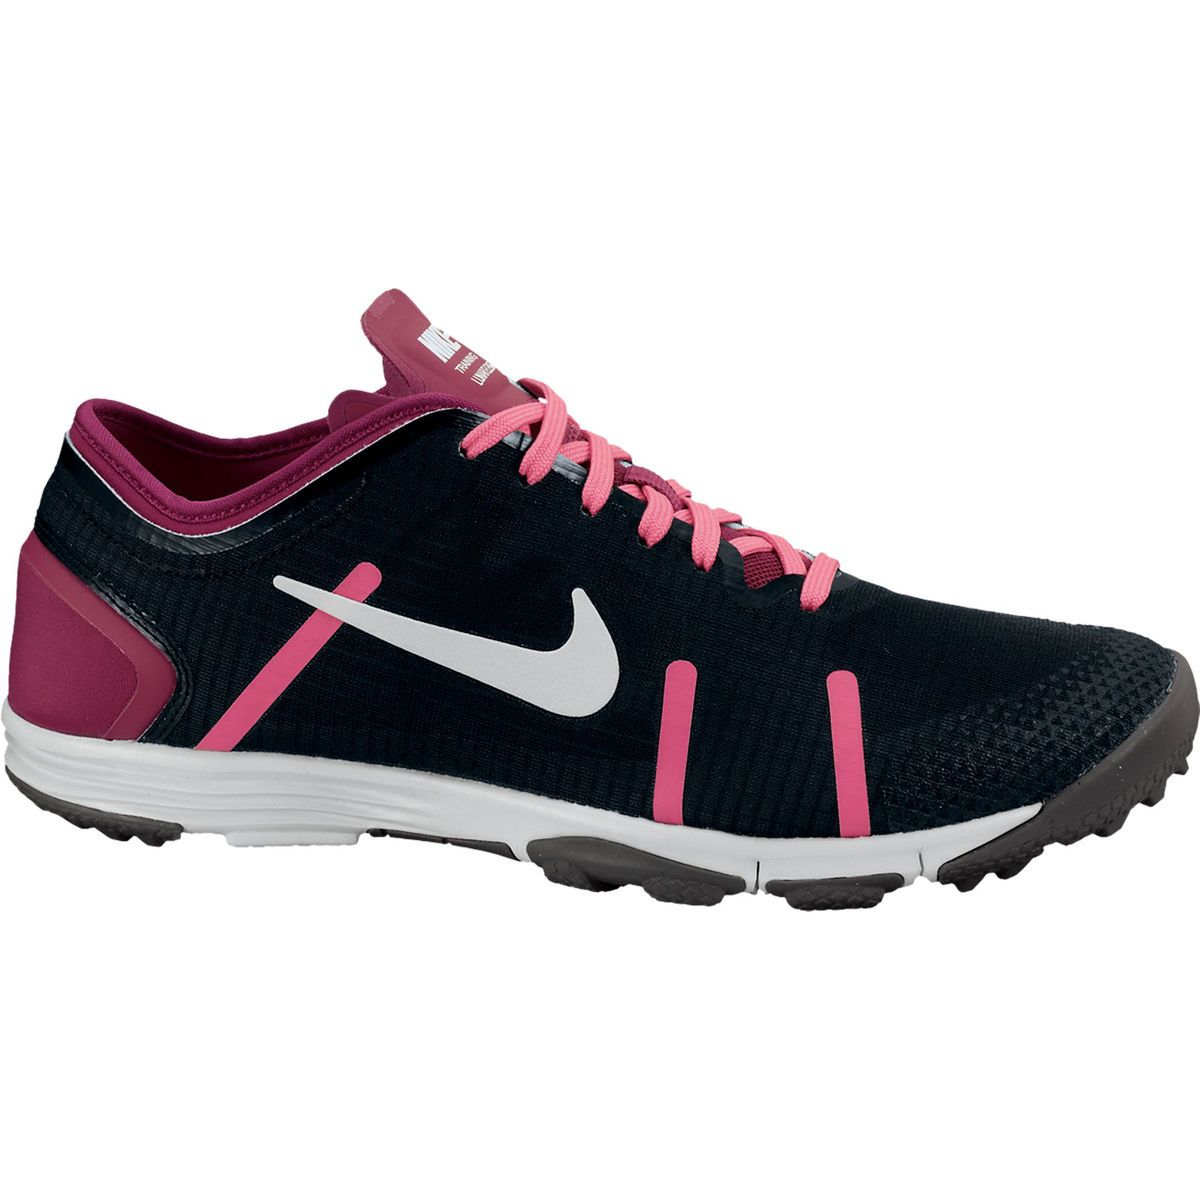 Training Running Ho13 Nike Shoes Ladies Lunarelement xYRqwAF